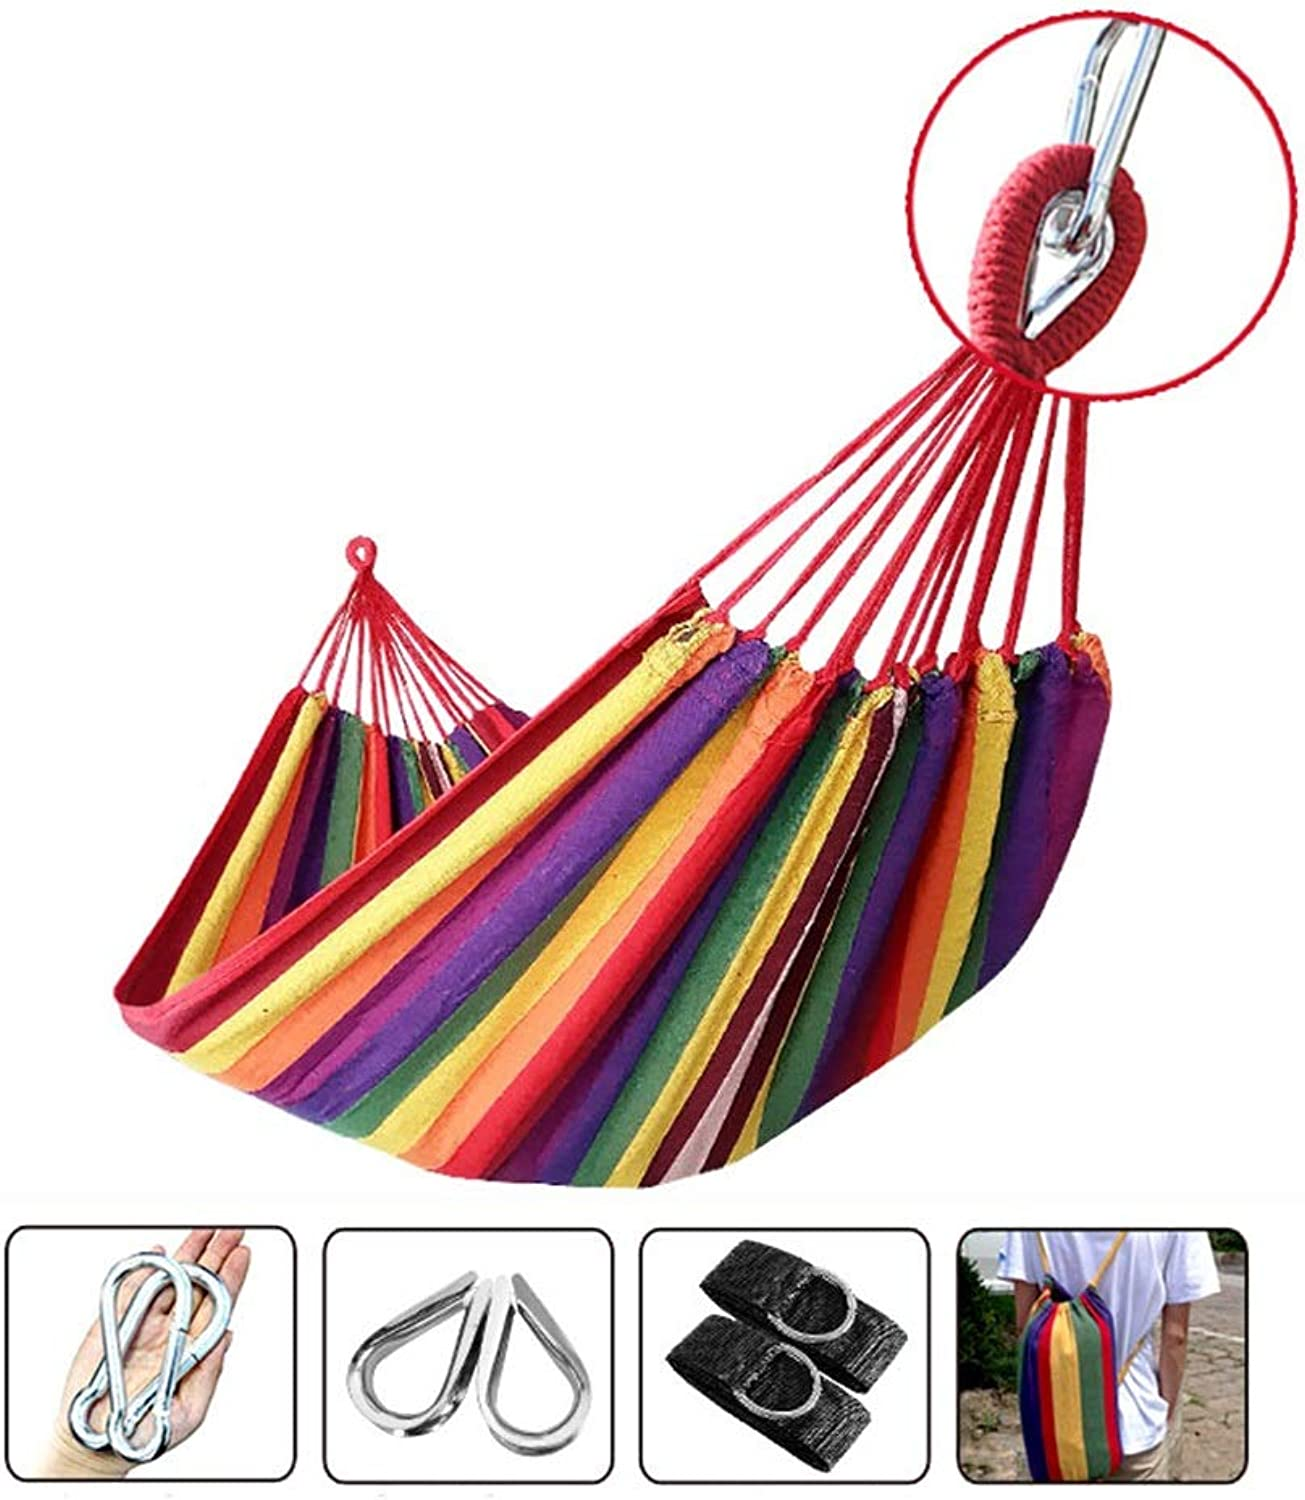 SSHHI Leisure Hammock, Woven with Metal Buckle Durable Cotton Canvas Double Woven Garden Courtyard Swing Bed 2 Person 280  160cm Load 250Kg (color   Red, Size   280  160CM)